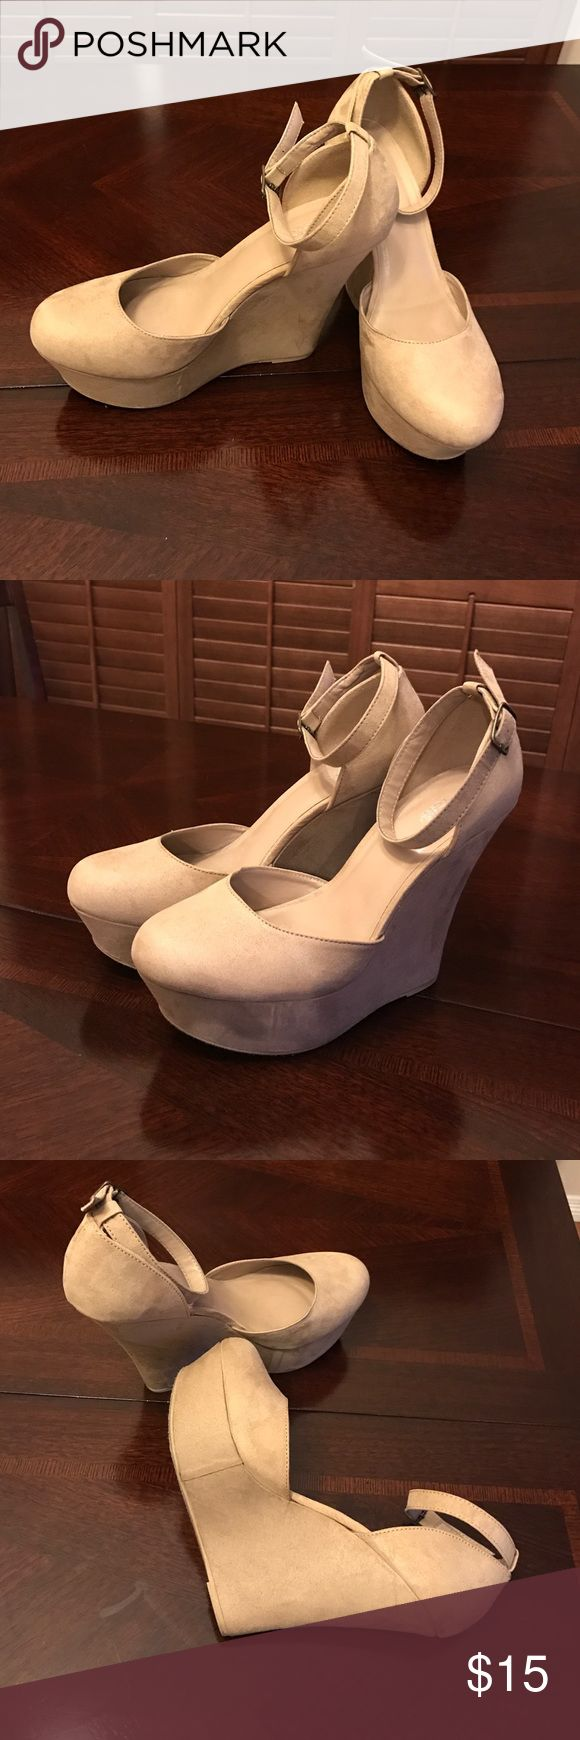 Nude Suede Platform wedge shoes Great condition, very comfortable, 5inch, nude platform wedge shoes. Worn only a couple of times. Great color that goes with any outfit. Charlotte Russe Shoes Wedges